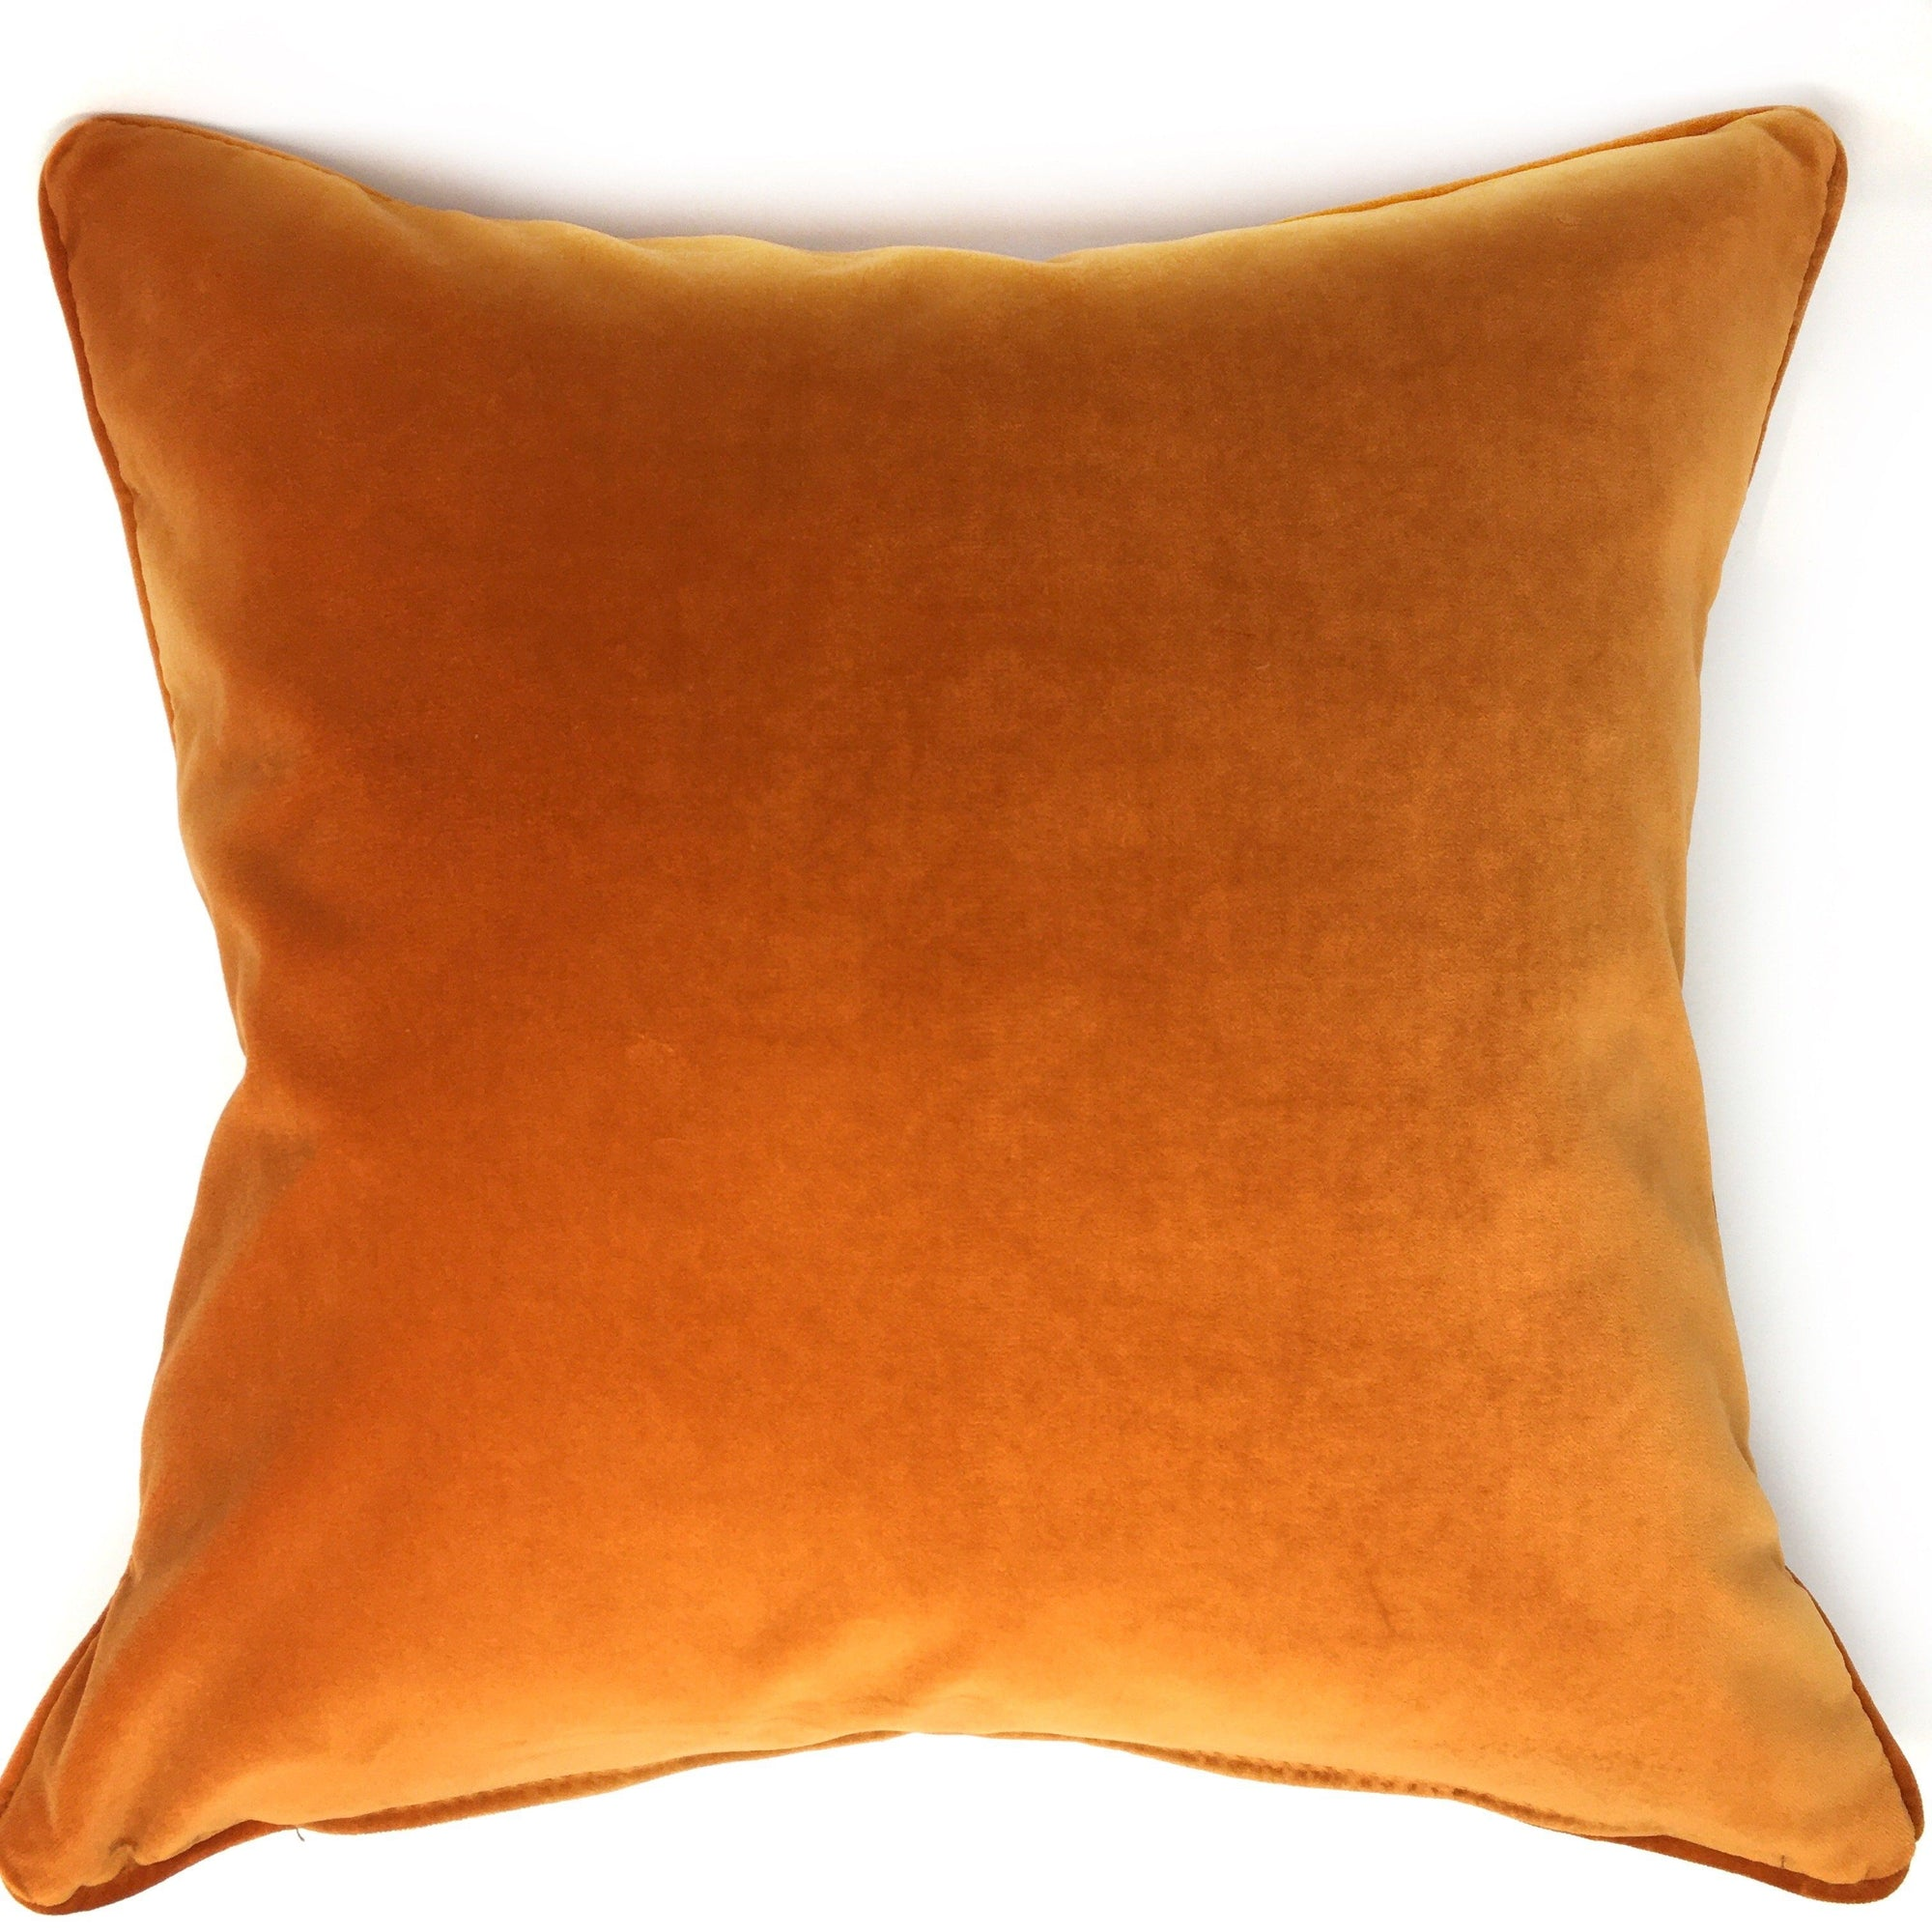 Amber Bollywood Velvet Cushion - Barnbury